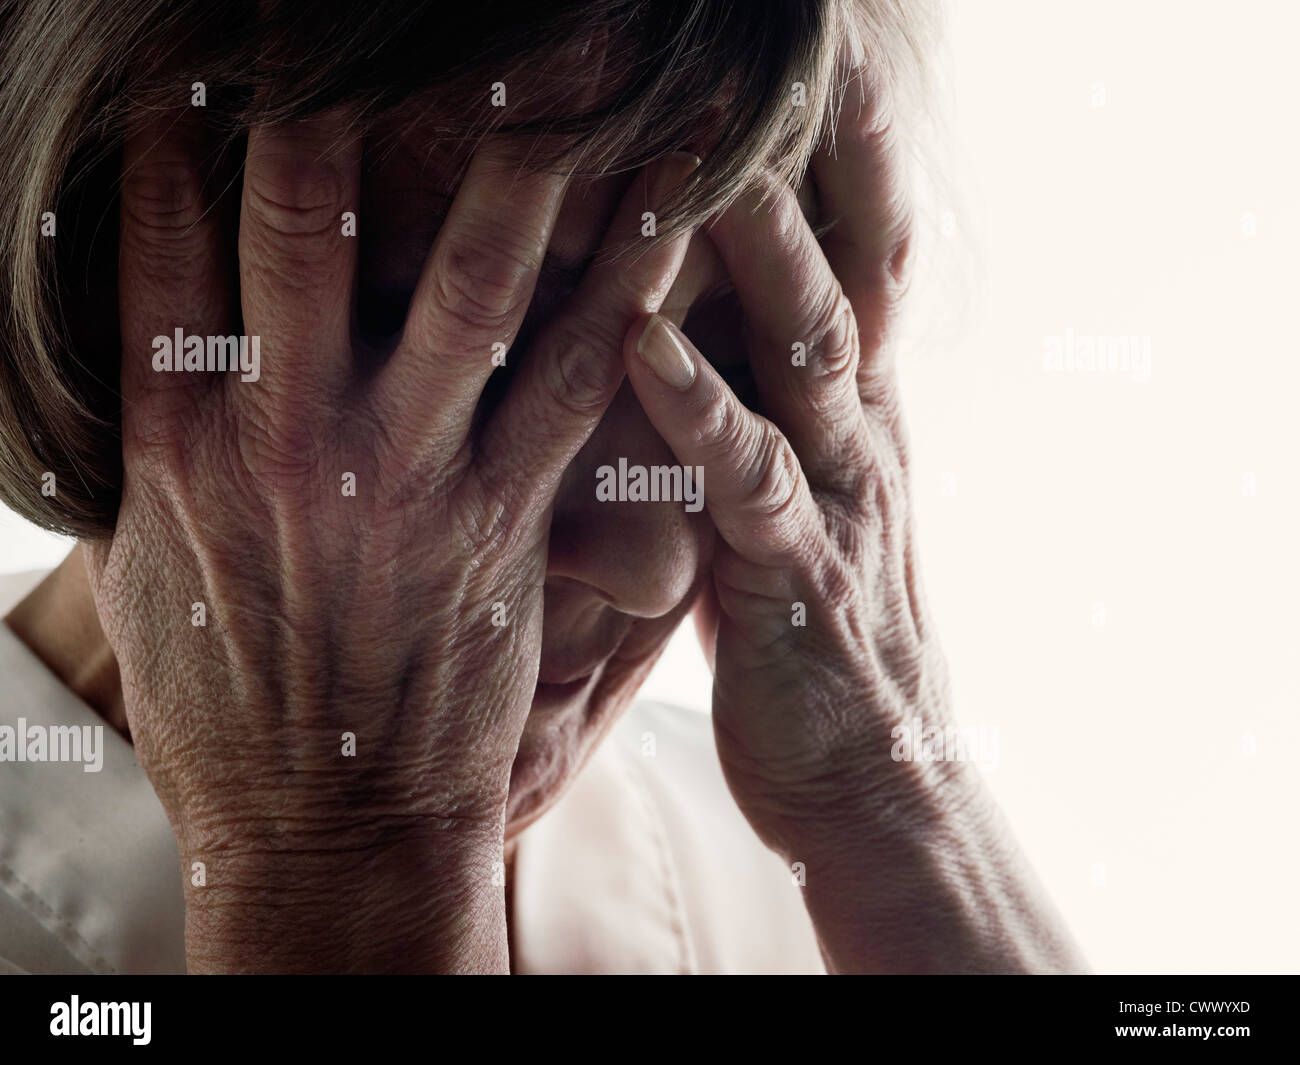 Older woman clutching her face - Stock Image